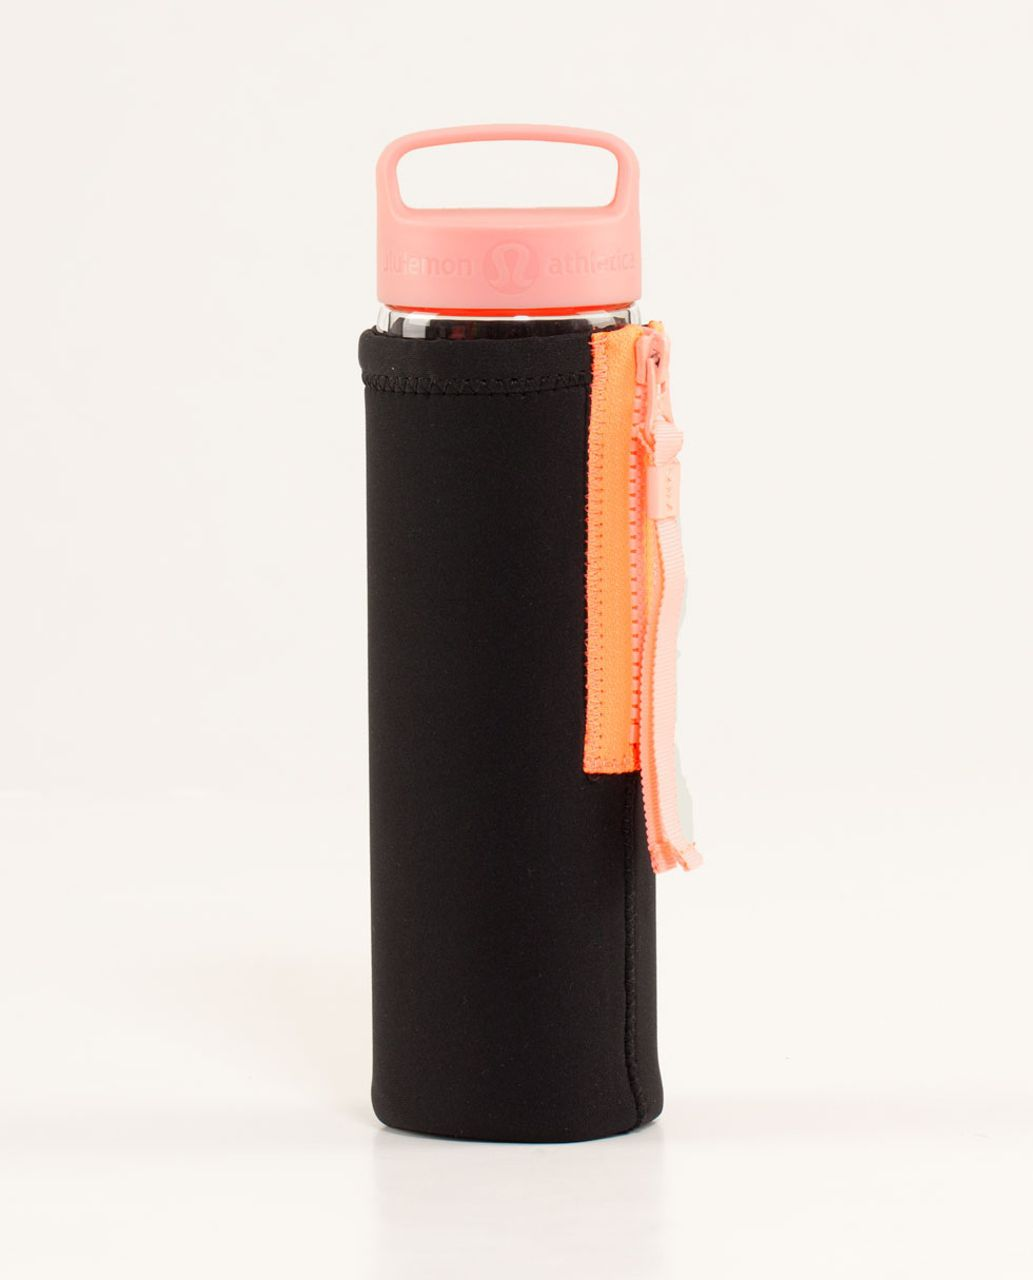 Lululemon Pure Balance Waterbottle *With Sleeve - Black / Bleached Coral